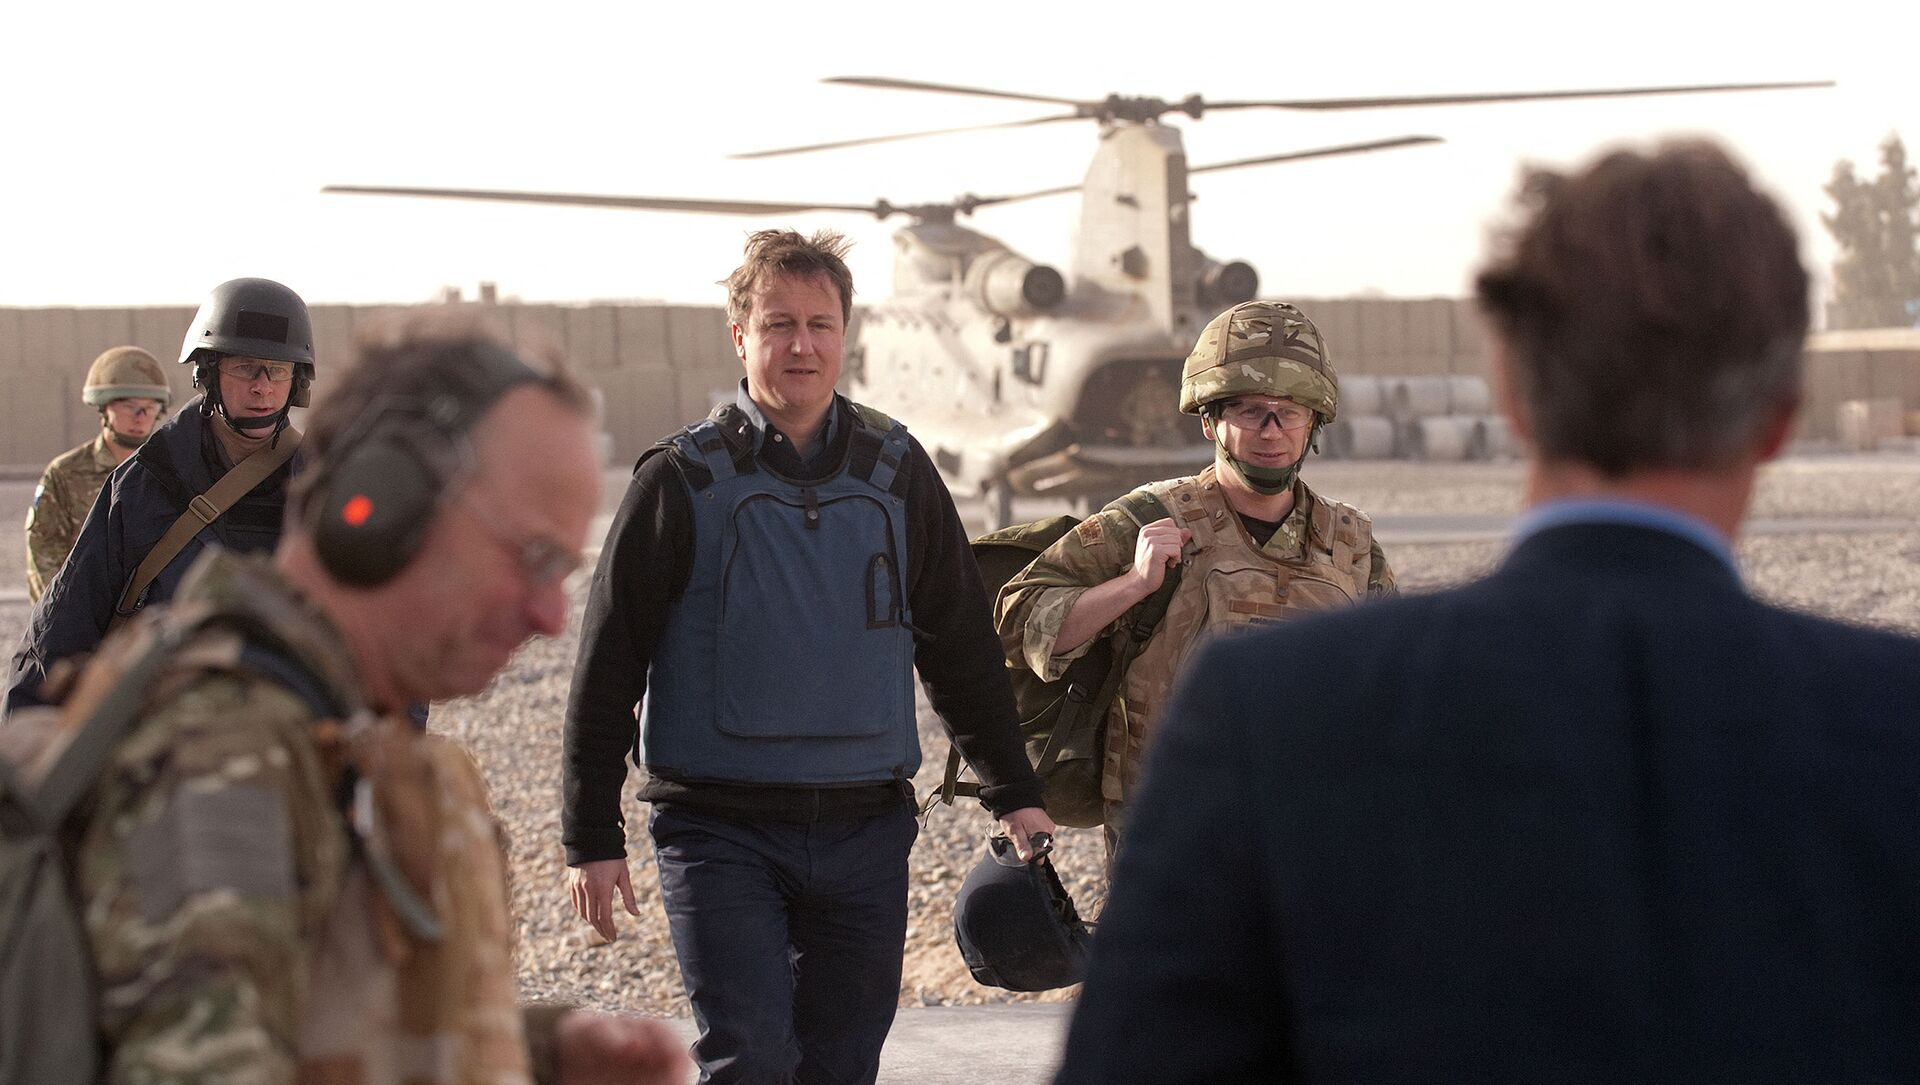 British Prime Minister David Cameron (C) arrives at Lashkar Gah base in Afghanistan on December 6, 2010. Cameron has made an unannounced trip to Afghanistan to demonstrate the growing stability in the country and to see how troops are helping to train up the Afghan security services.  - Sputnik International, 1920, 03.08.2021